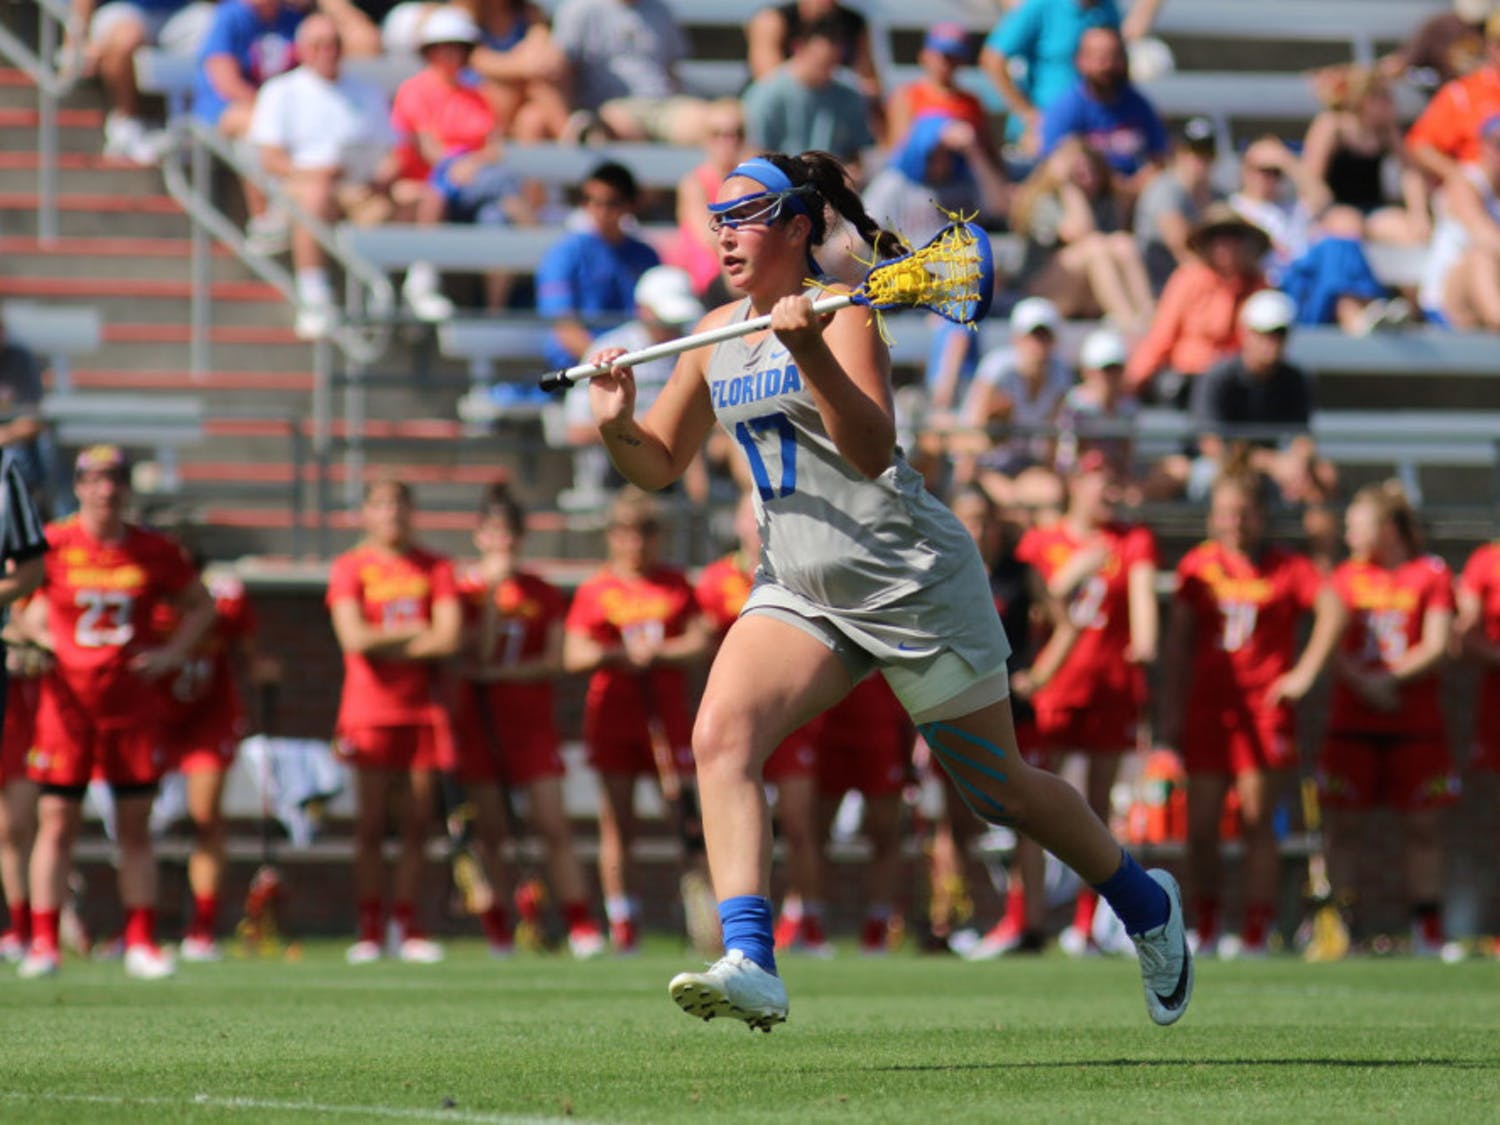 Sophomore midfielder Shannon Kavanagh scored four goals and was perfect from the free position against the No. 16 Greyhounds in Baltimore on Saturday.